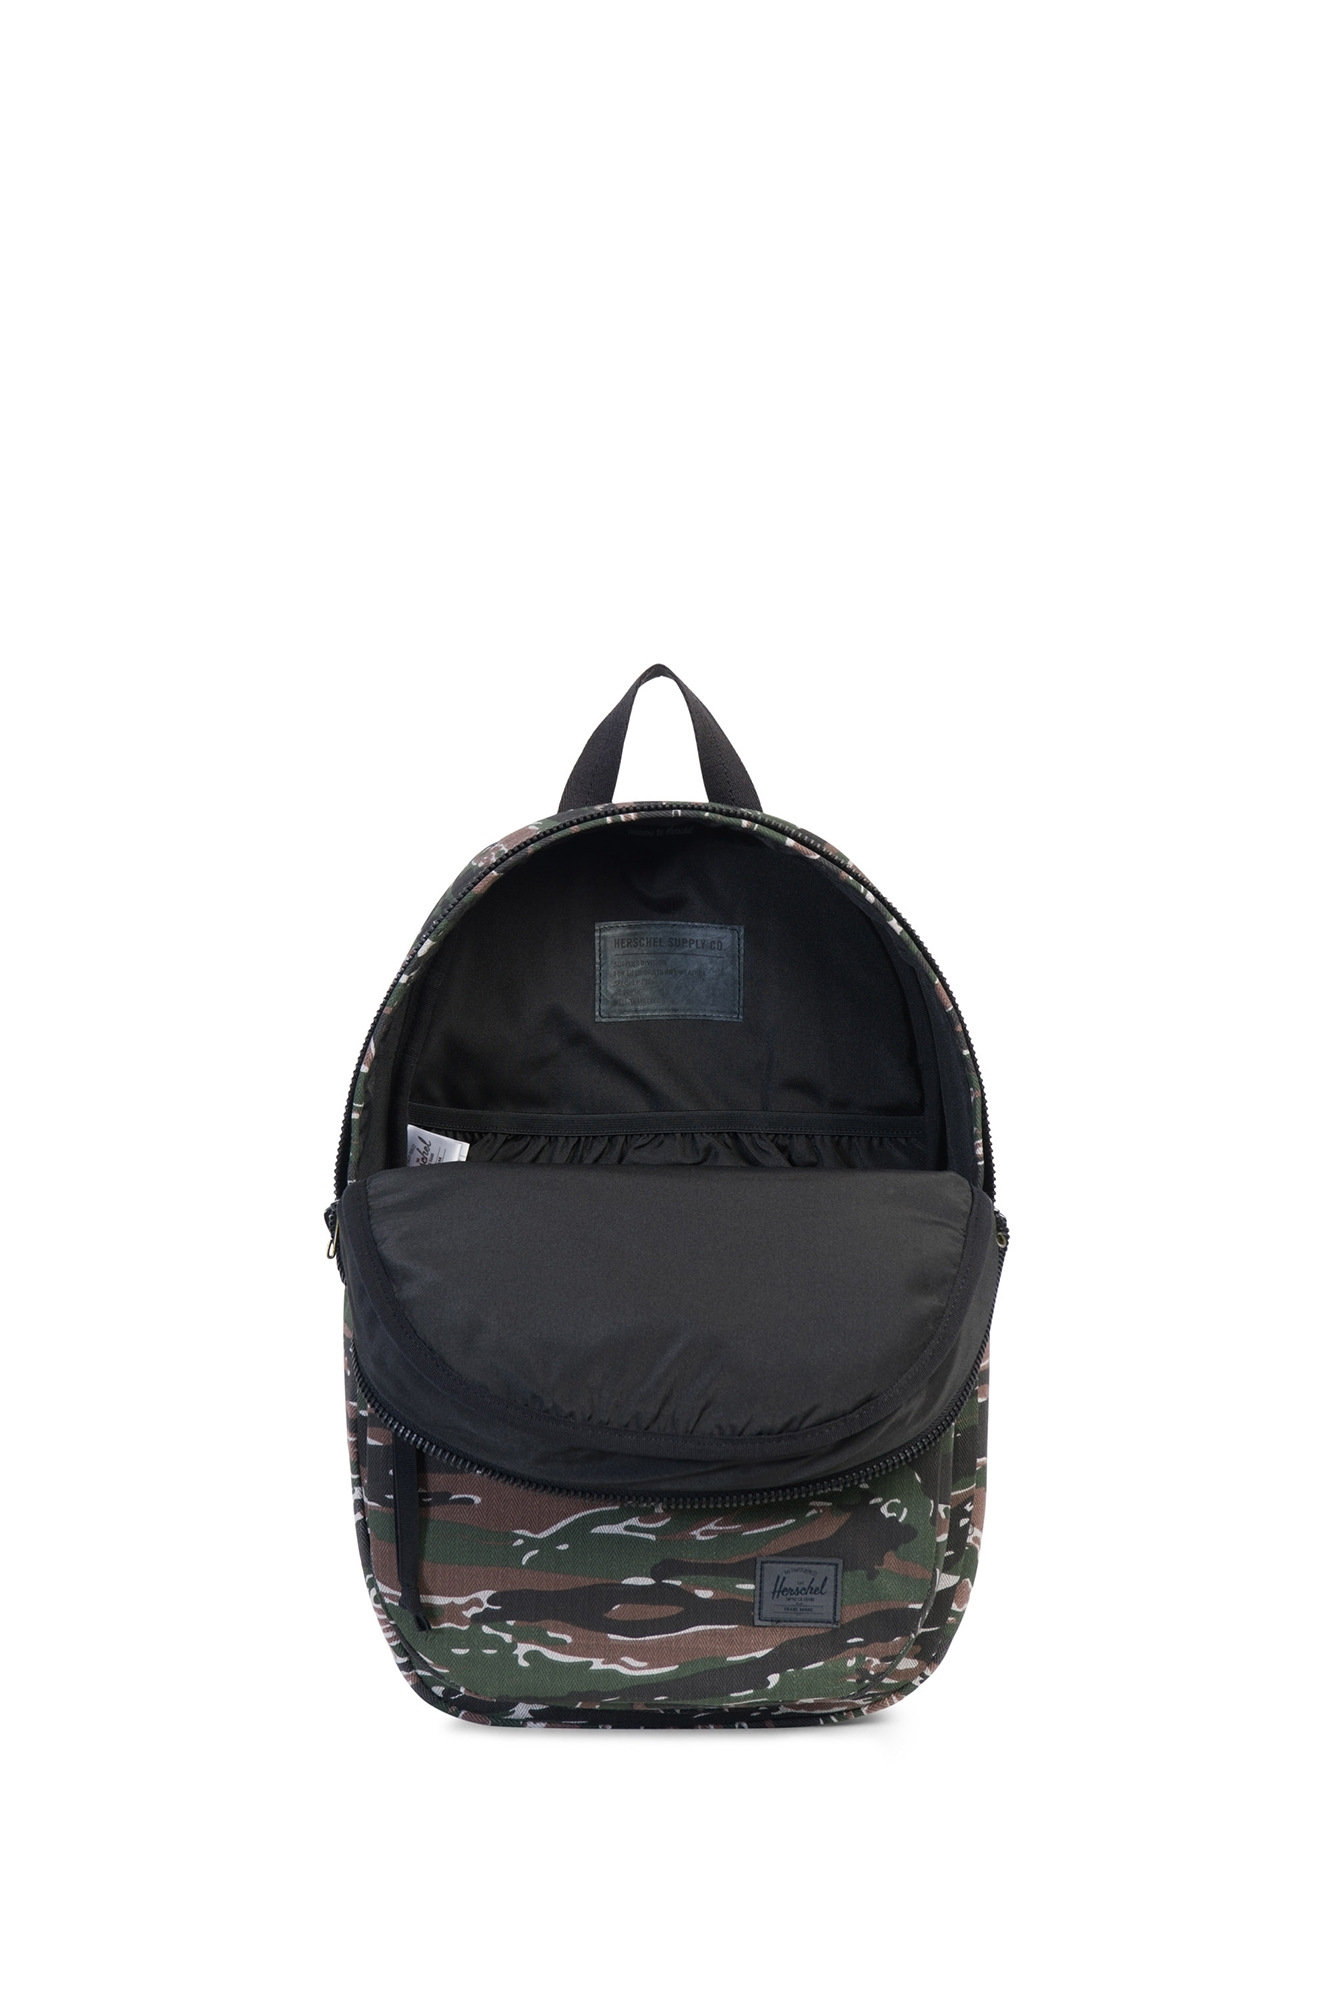 Herschel - Lawson Backpack Tiger camo